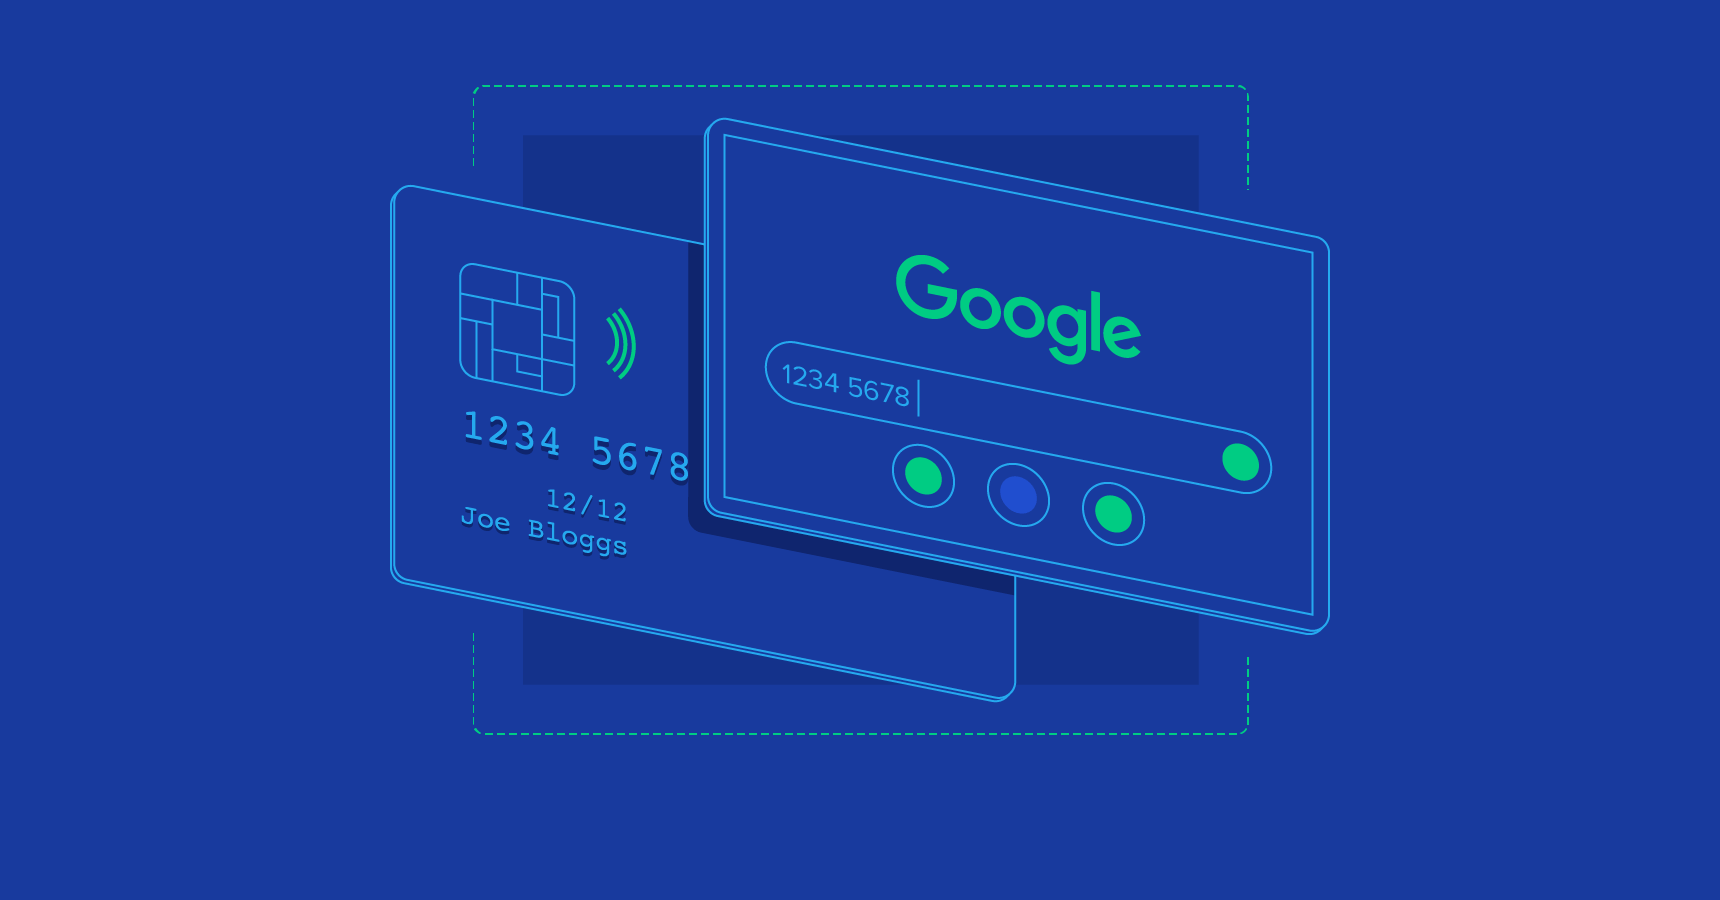 A Google Credit Card Hack How-To Guide (White Hat) | Toptal